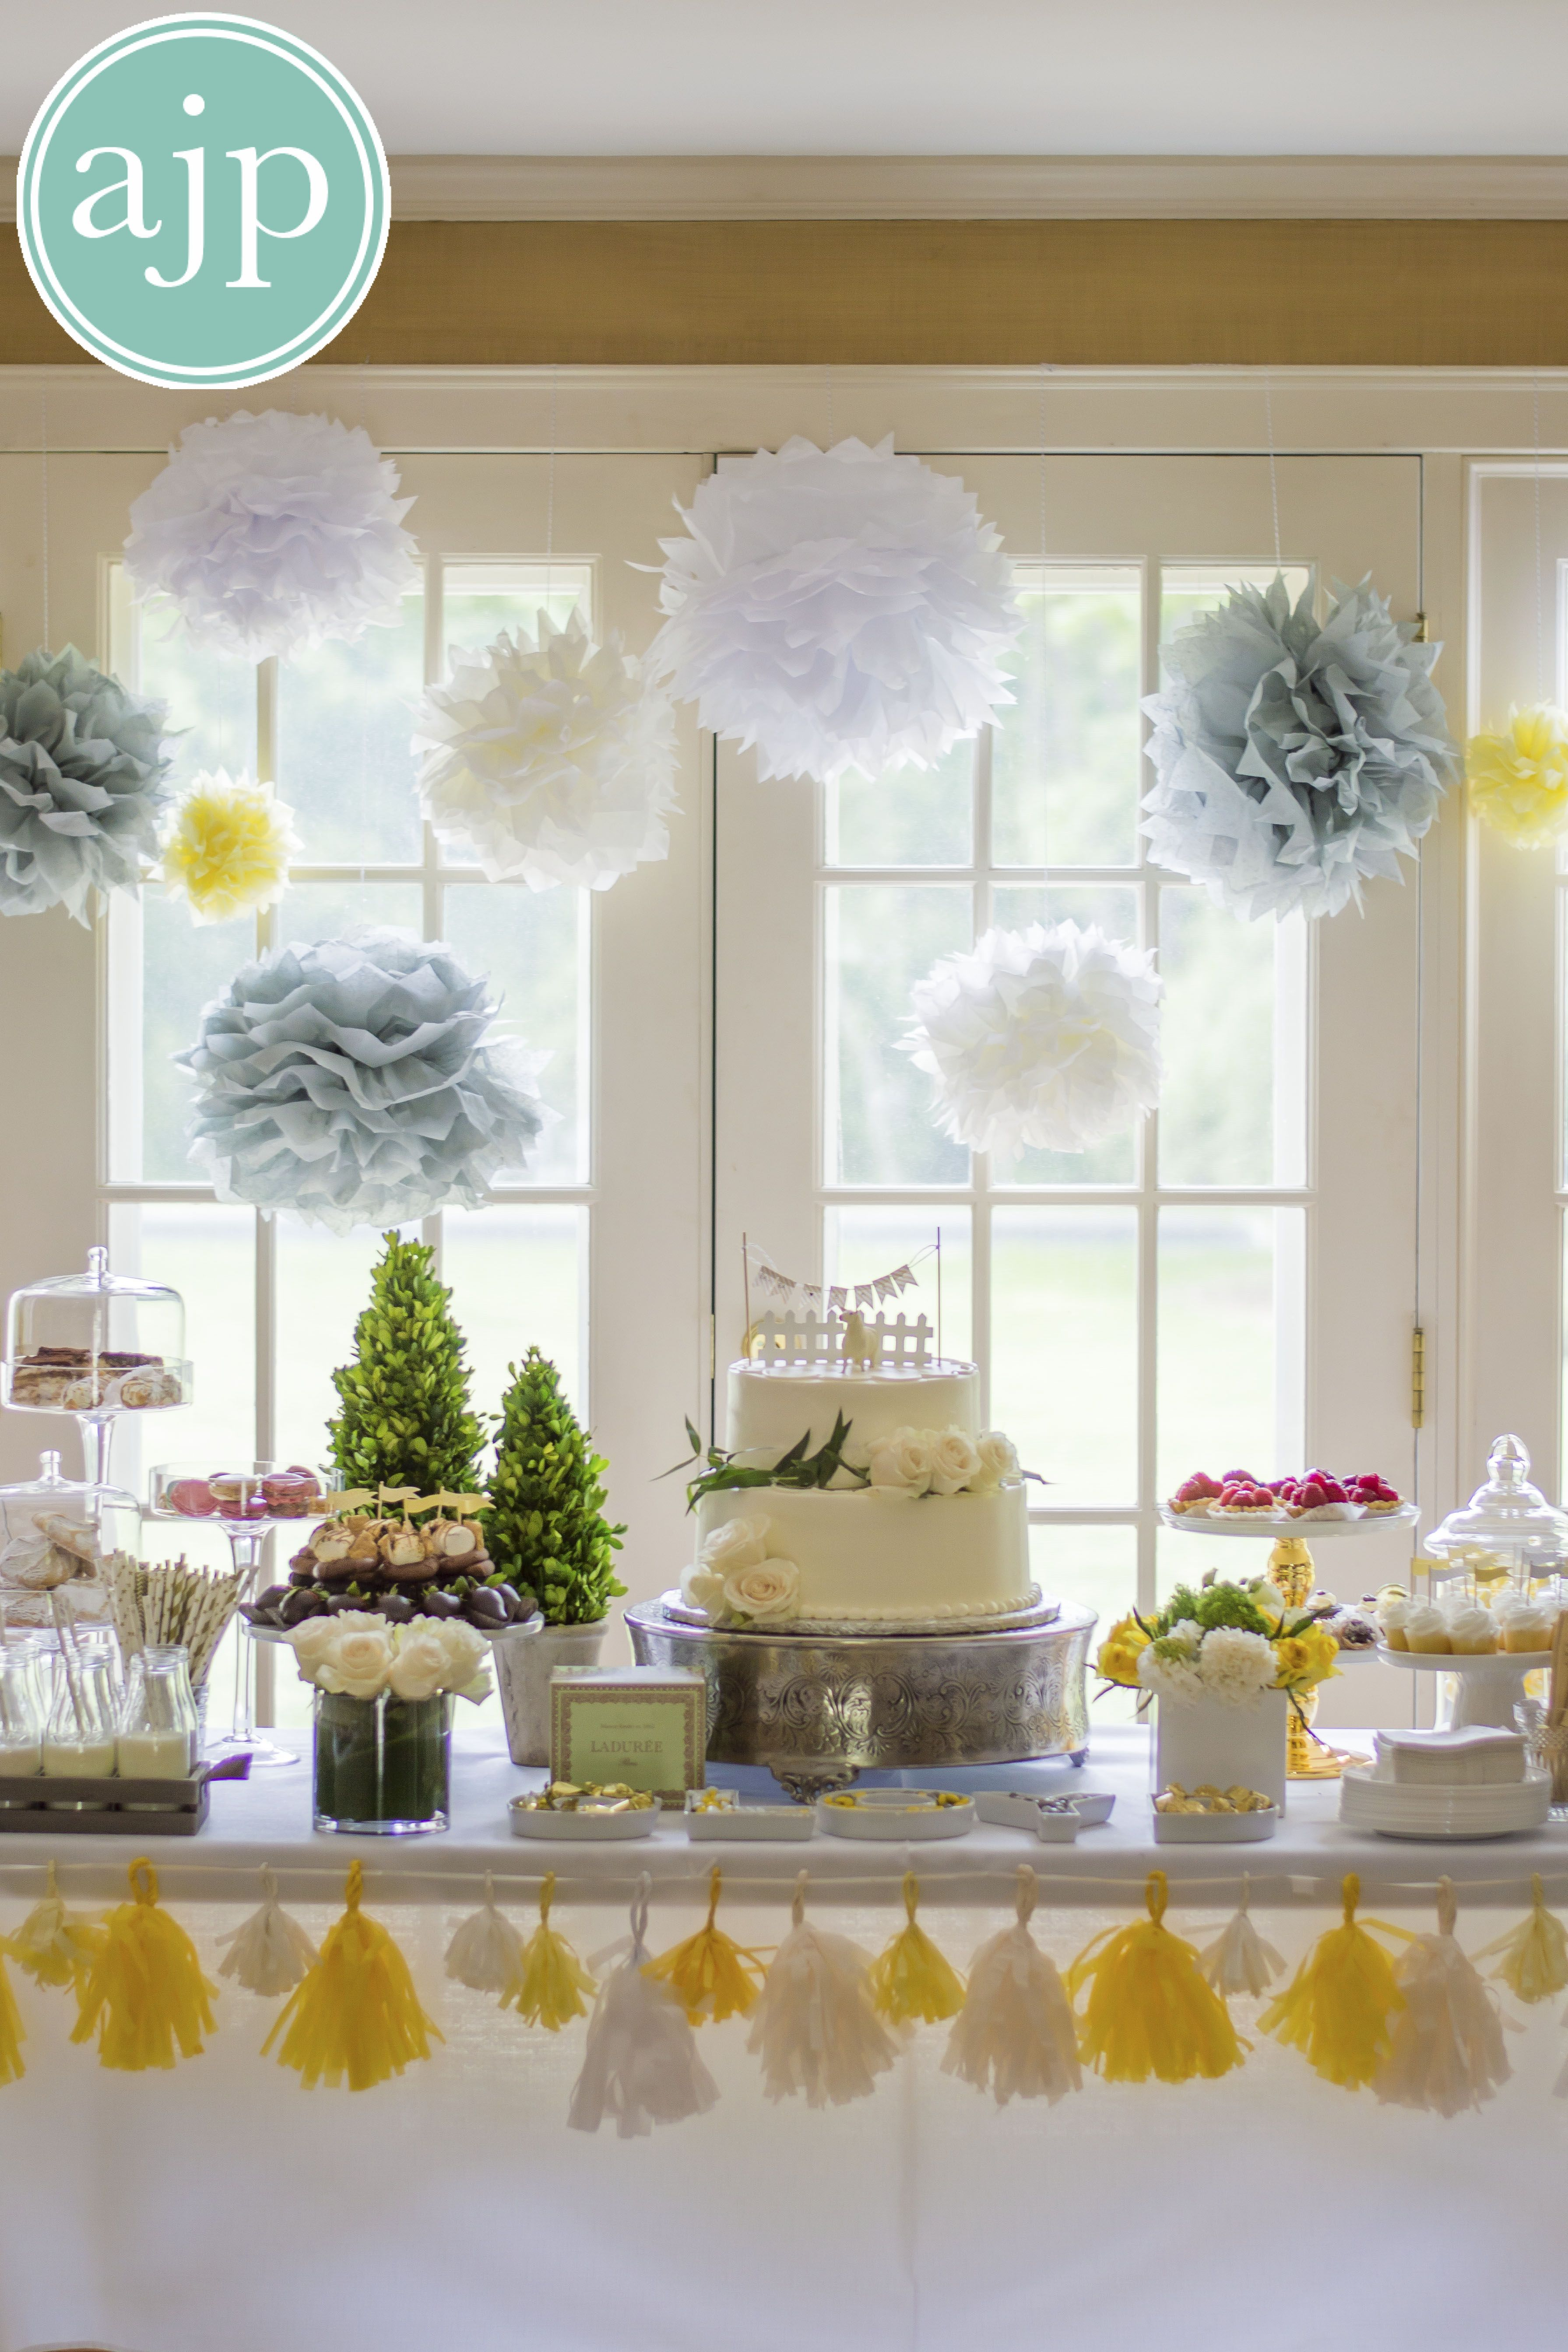 #alexajohnsonphotography #cupcakes #flags #beautiful #event #photography #baby #shower #party #decor #treats #pastries #delicious #food #photos #dessert #chocolate #strawberries #Smores #cupcakes #cupcakeflags #Straws #lamb #cake #white #roses #flowers